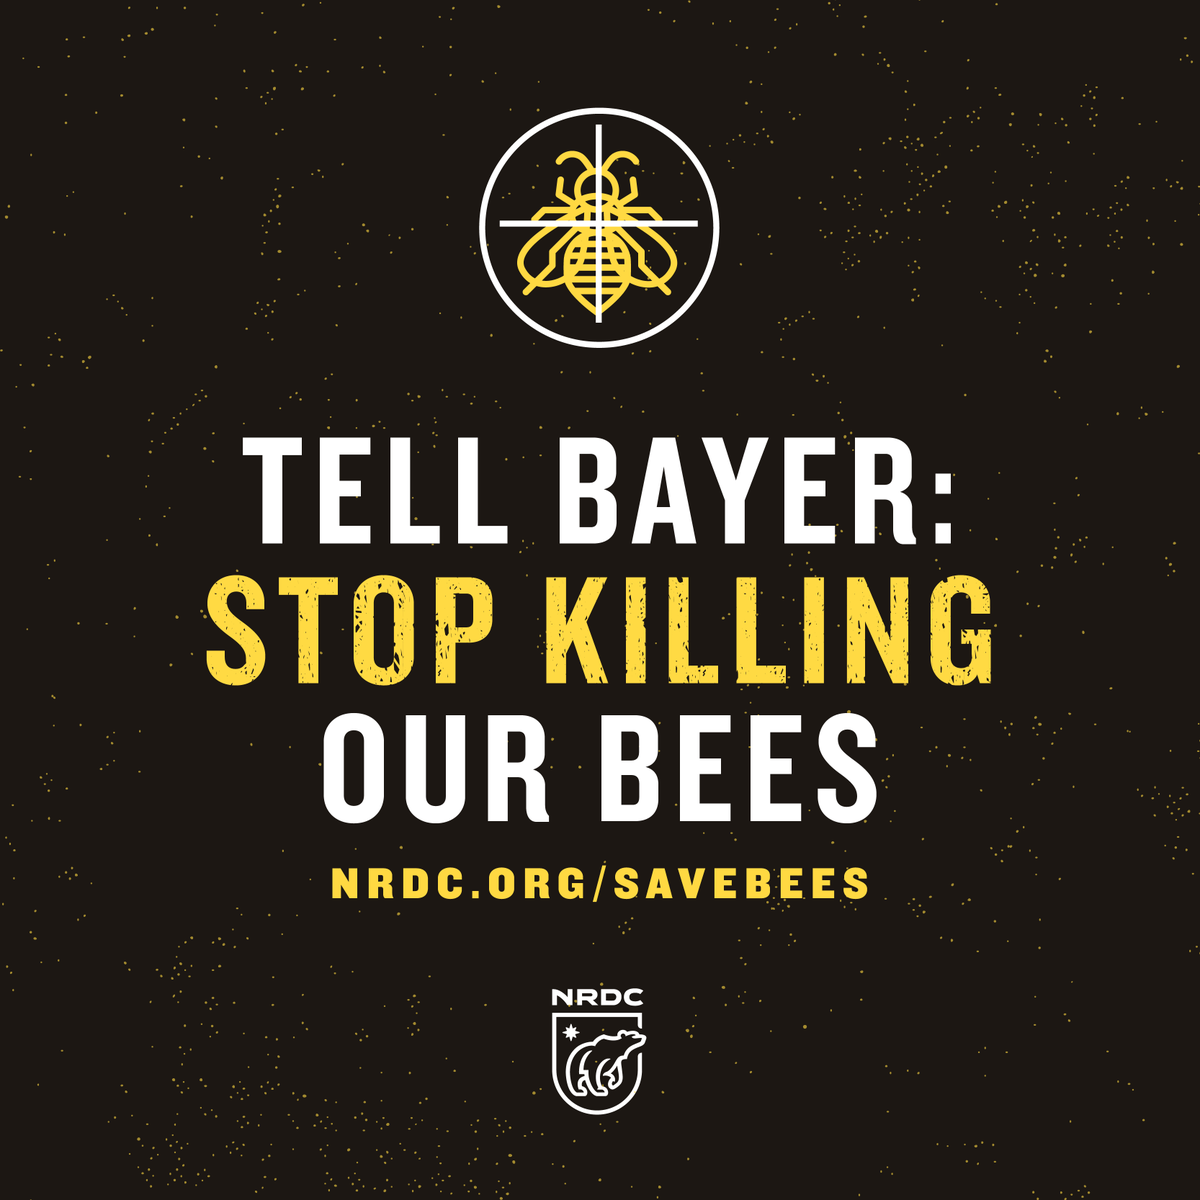 RT @NRDC: America's bees are in trouble. Show your support by telling @Bayer to stop killing our bees. http://t.co/aQCq5wVDgH http://t.co/p…